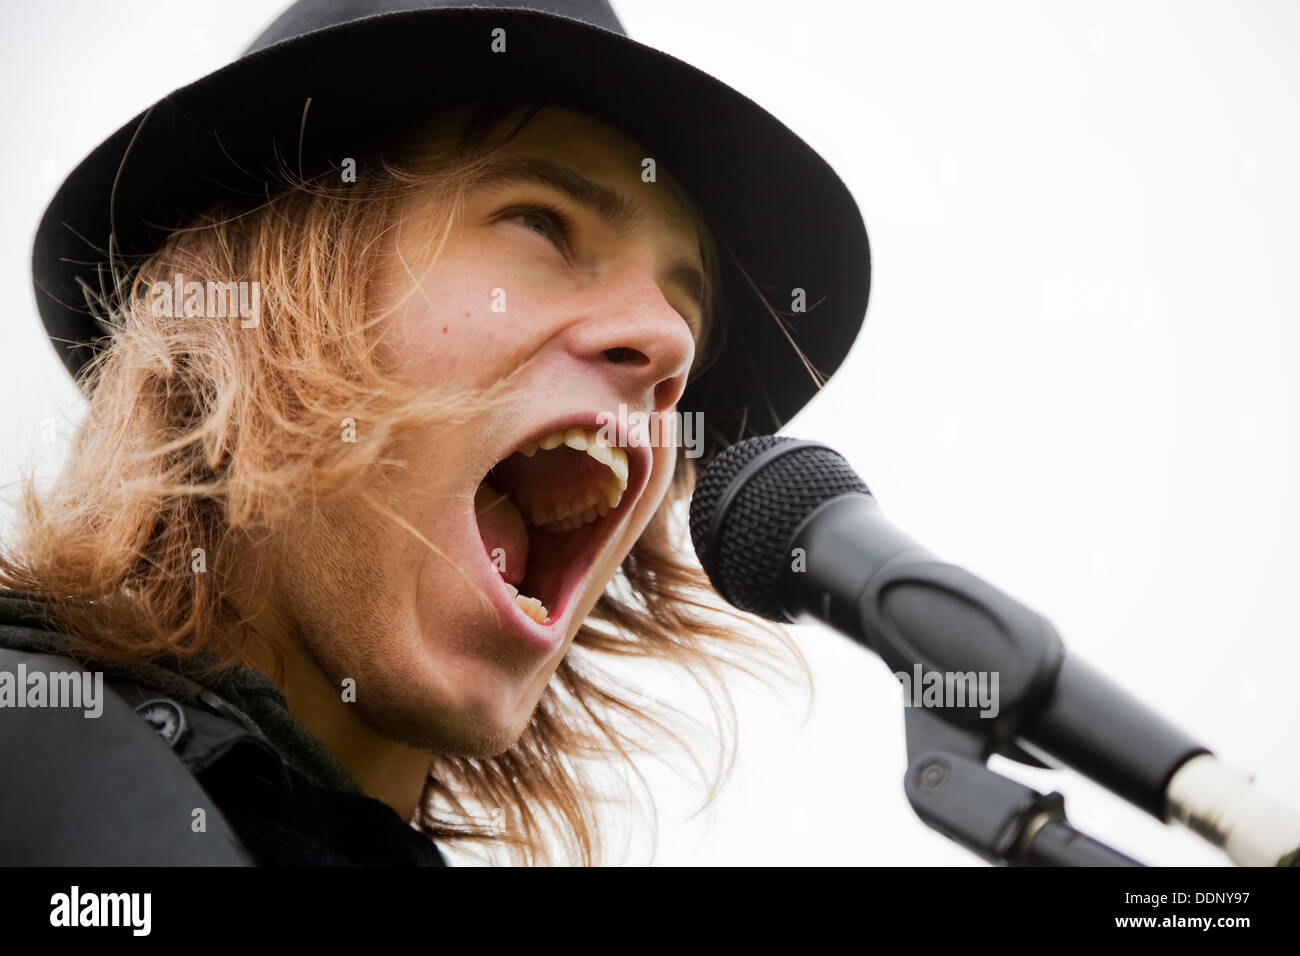 Young man in hat chante pour microphone Photo Stock